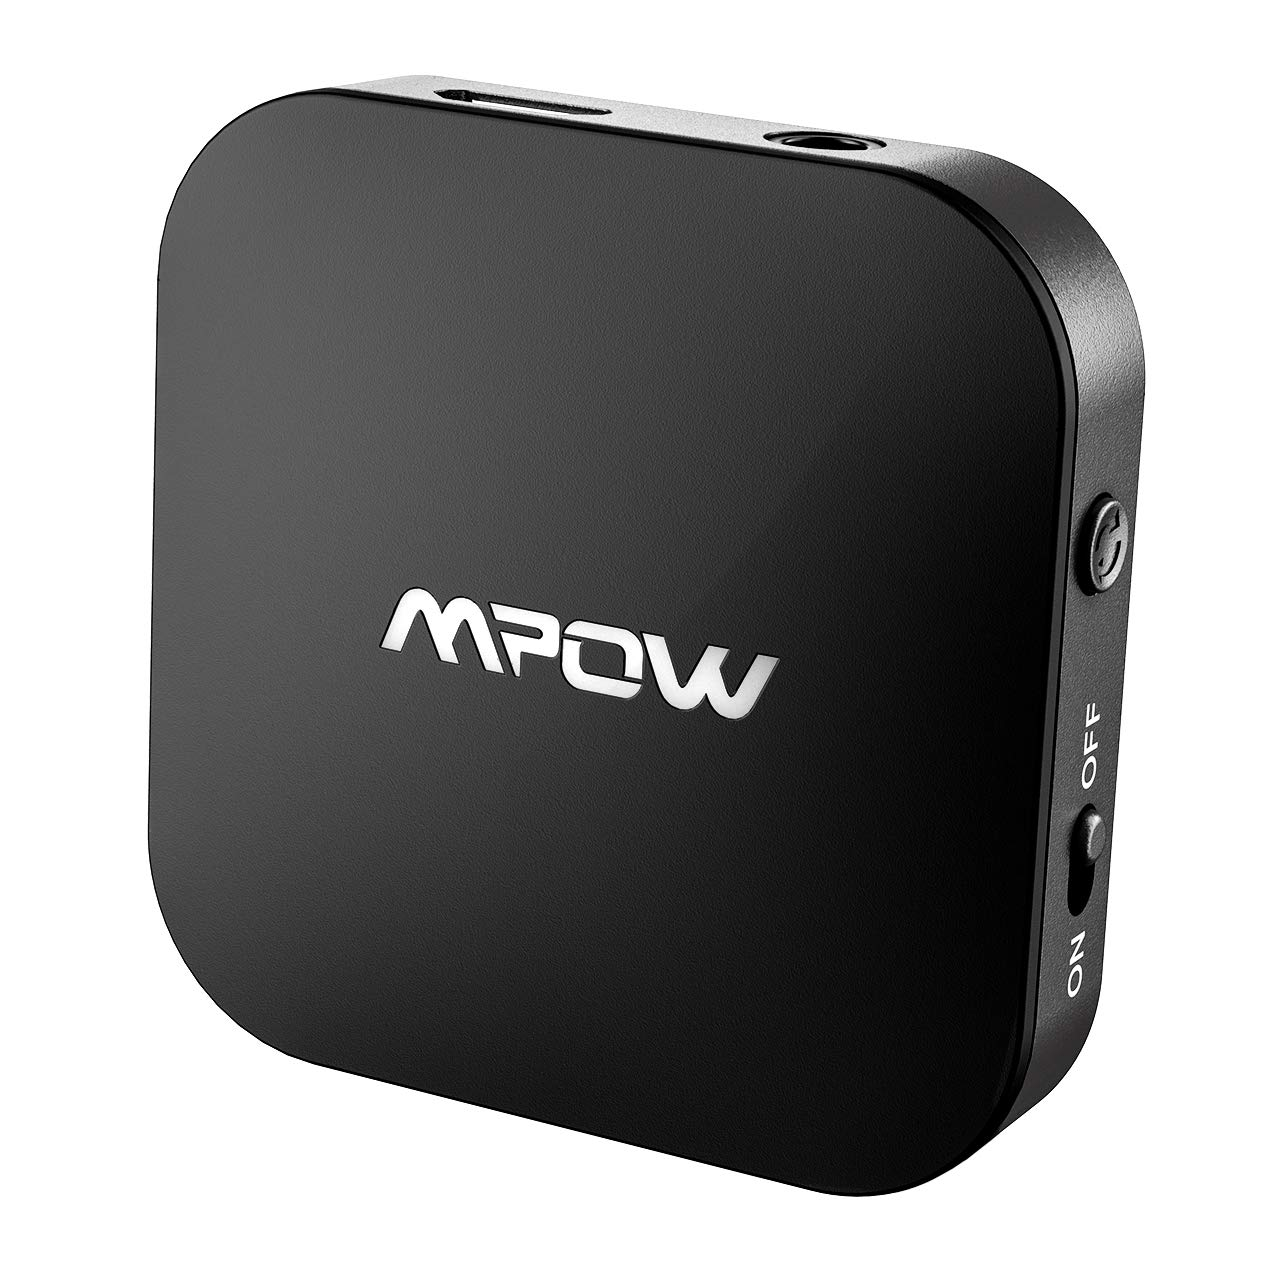 Mpow 5.0 Bluetooth Transmitter for TV with aptX Low Latency, Aux Bluetooth Adapter with 50 Feet Long Range and 30 Hours Long Playing Time, Wireless 3.5mm Audio Adapter (Dual-Link, aptX, aptX-LL, SBC)